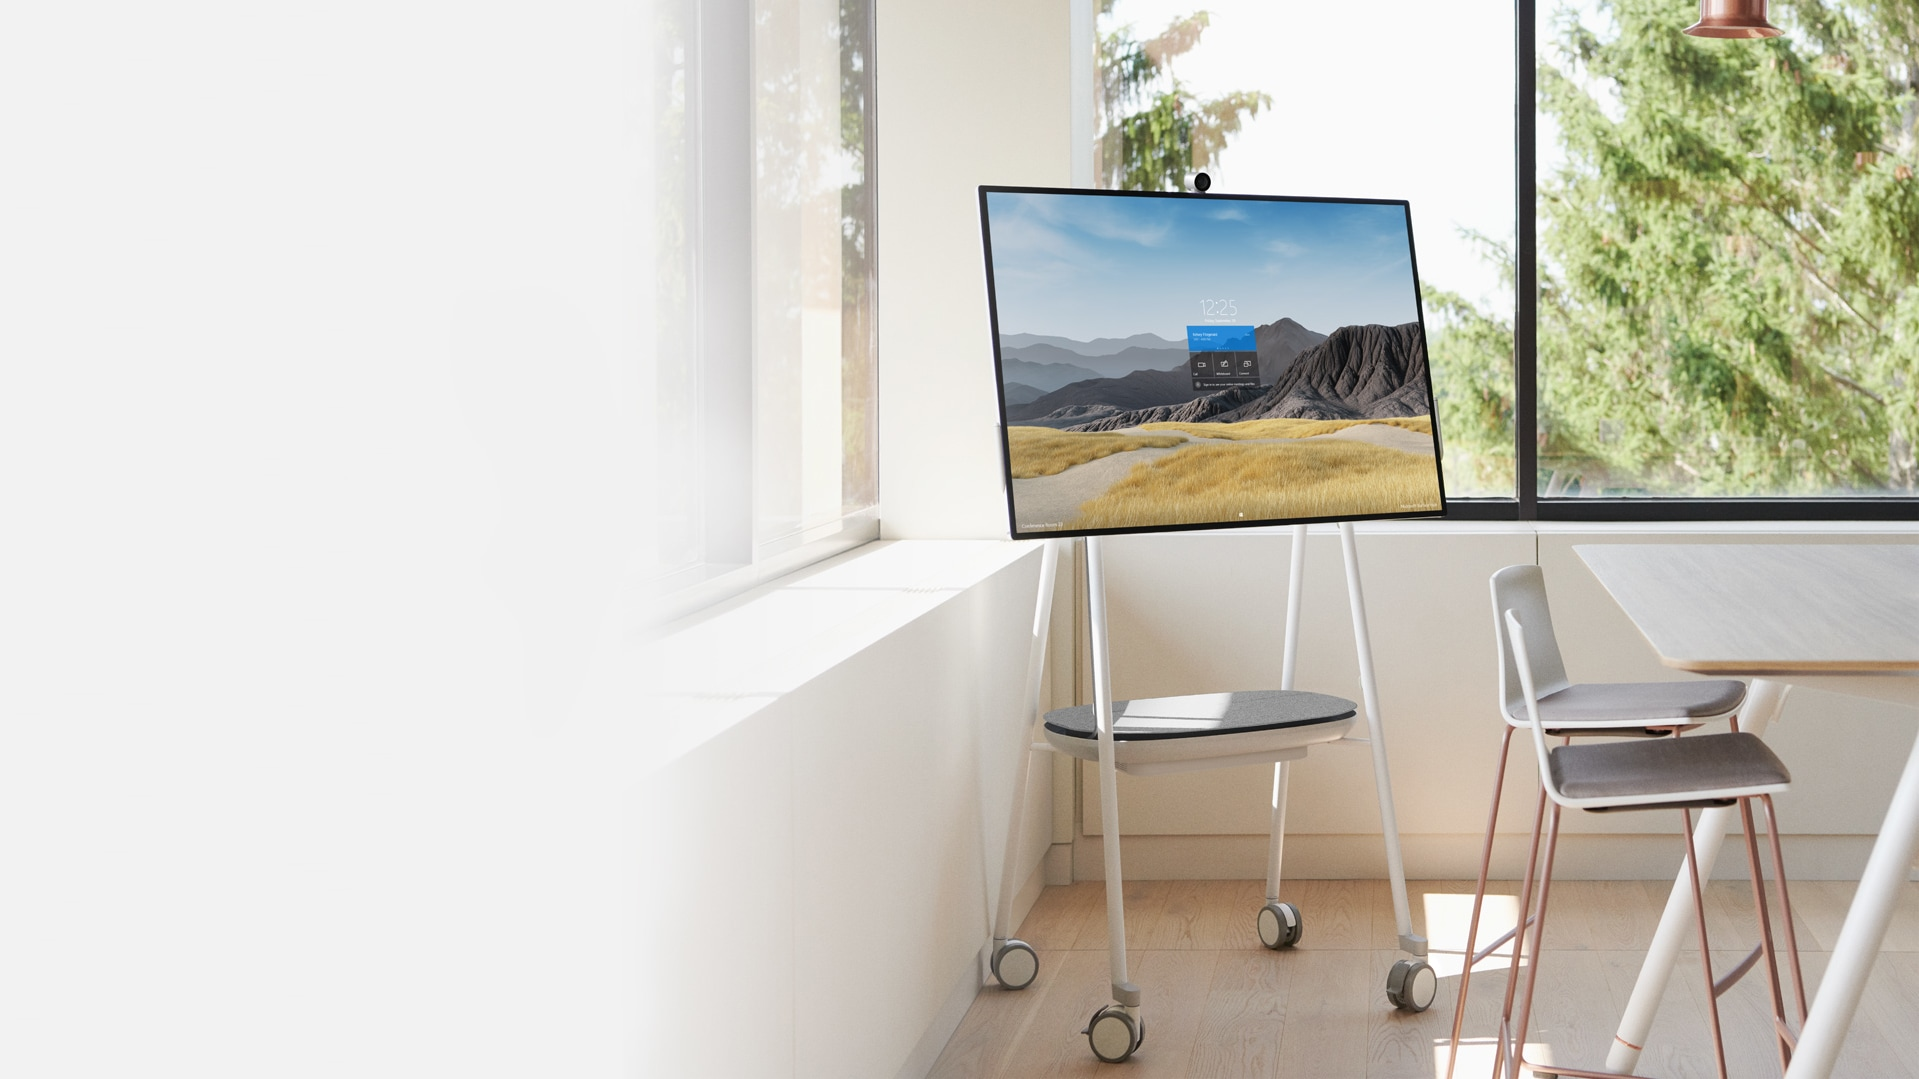 A Surface Hub 2S in the 50-inch size is shown in an office setting